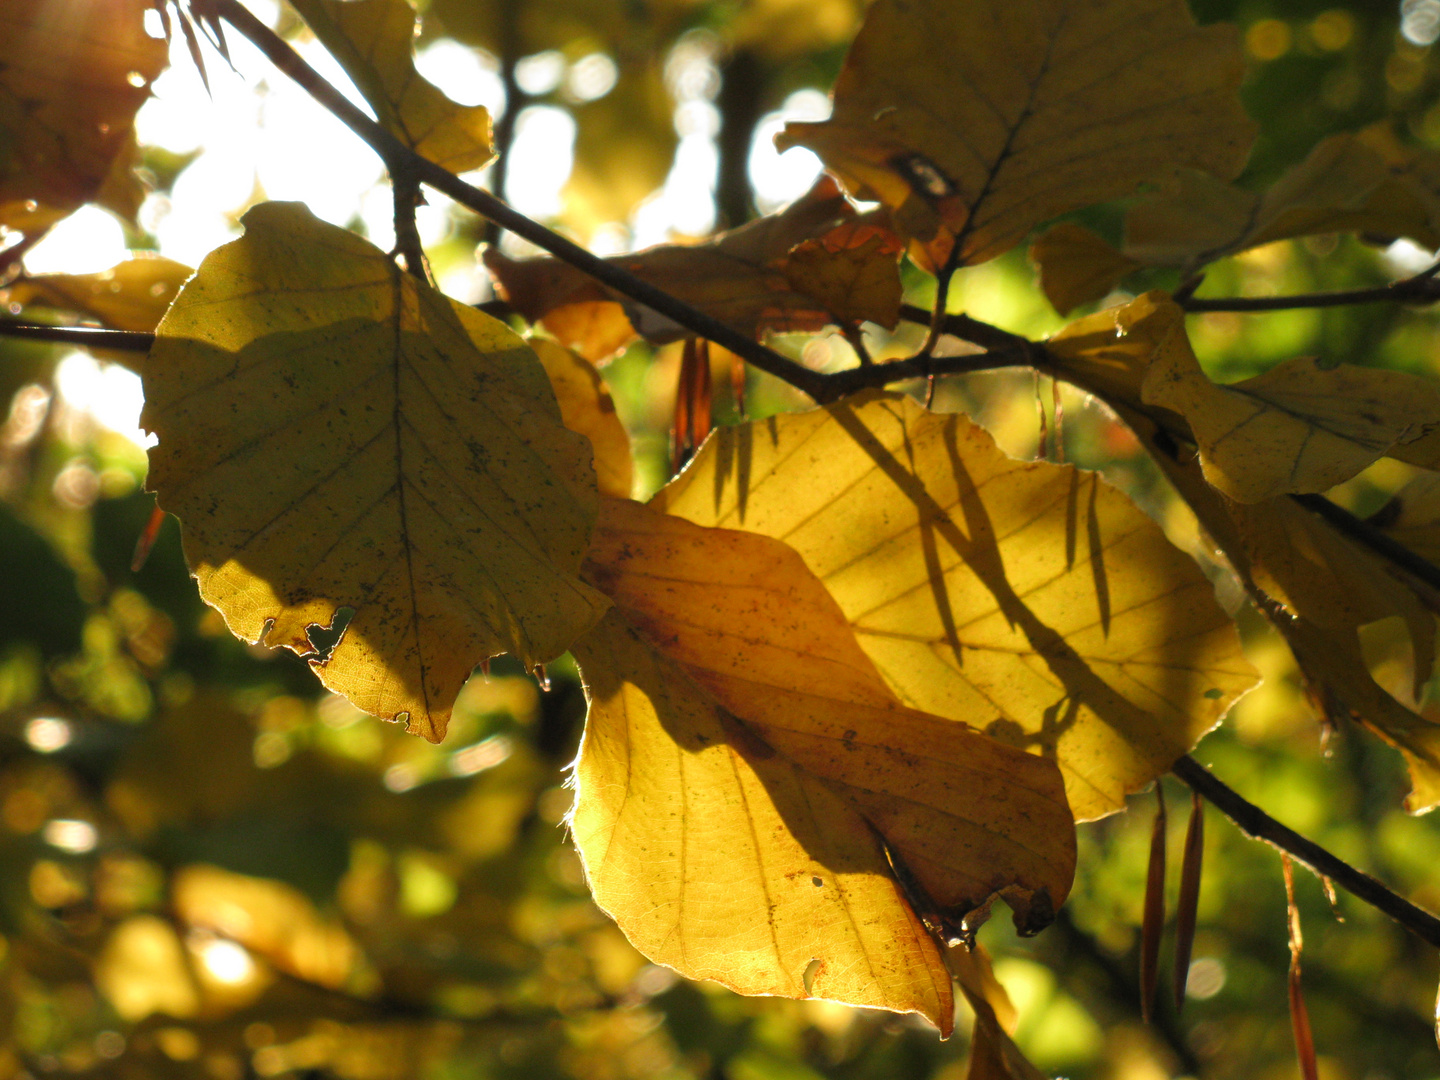 autumn leaves in autumn light